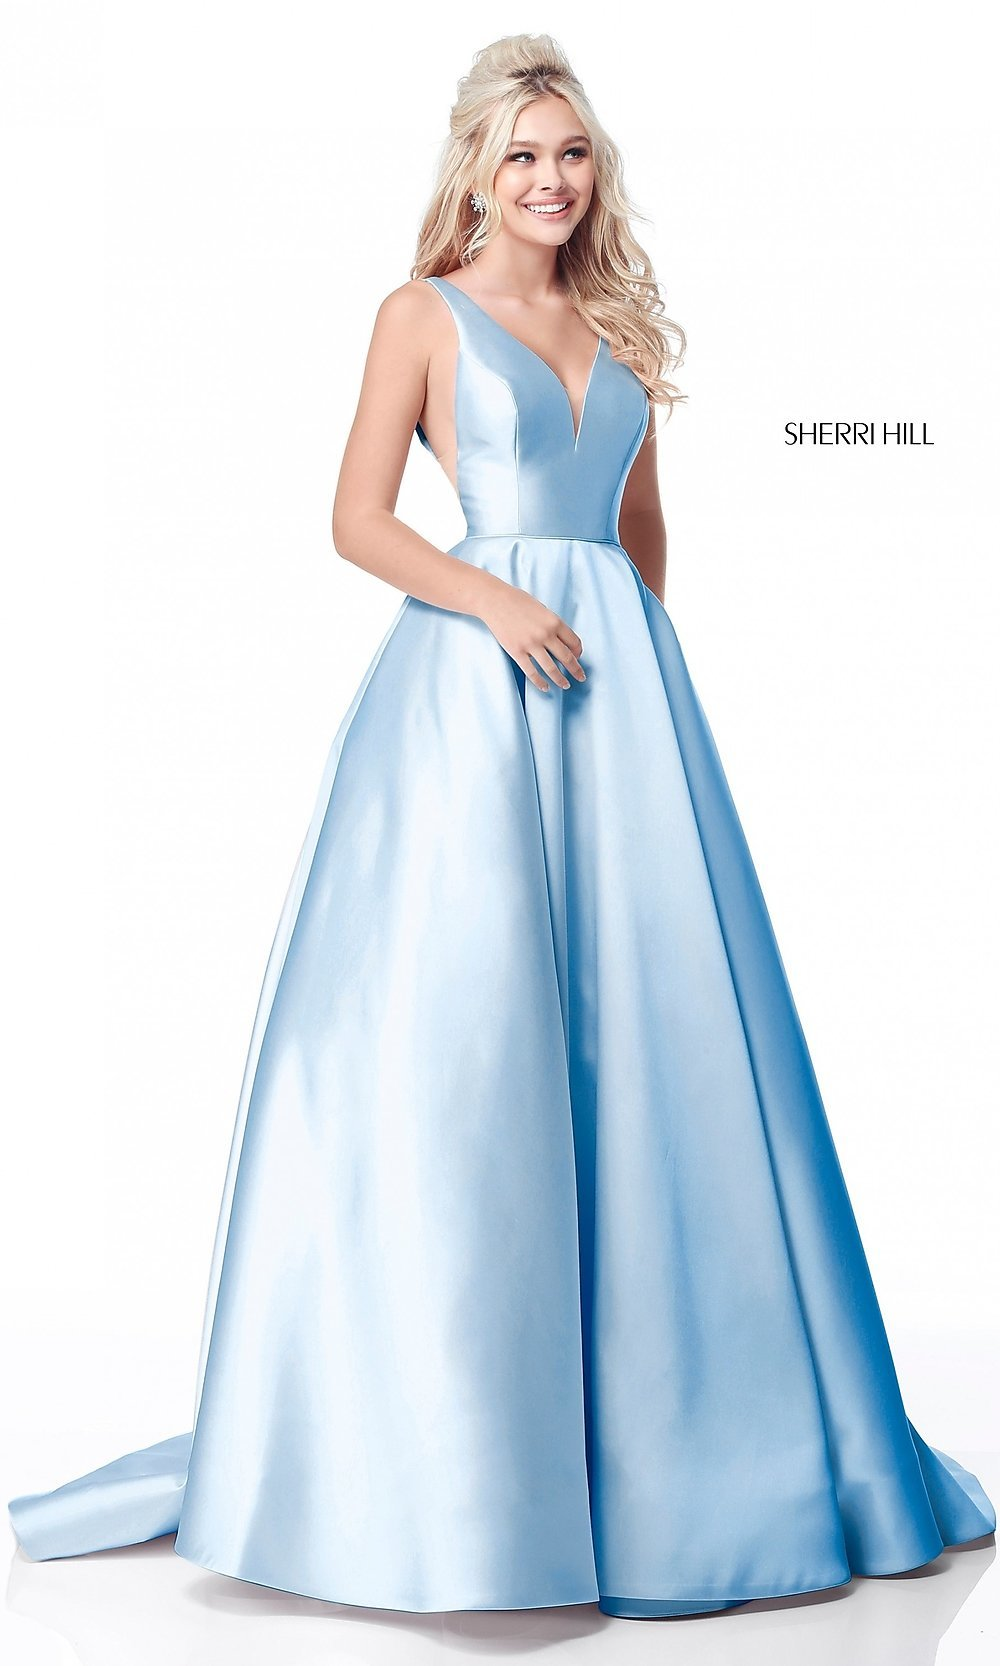 b0542183c95 Image of Sherri Hill deep-v-neck long prom dress. Style  SH. Tap to expand